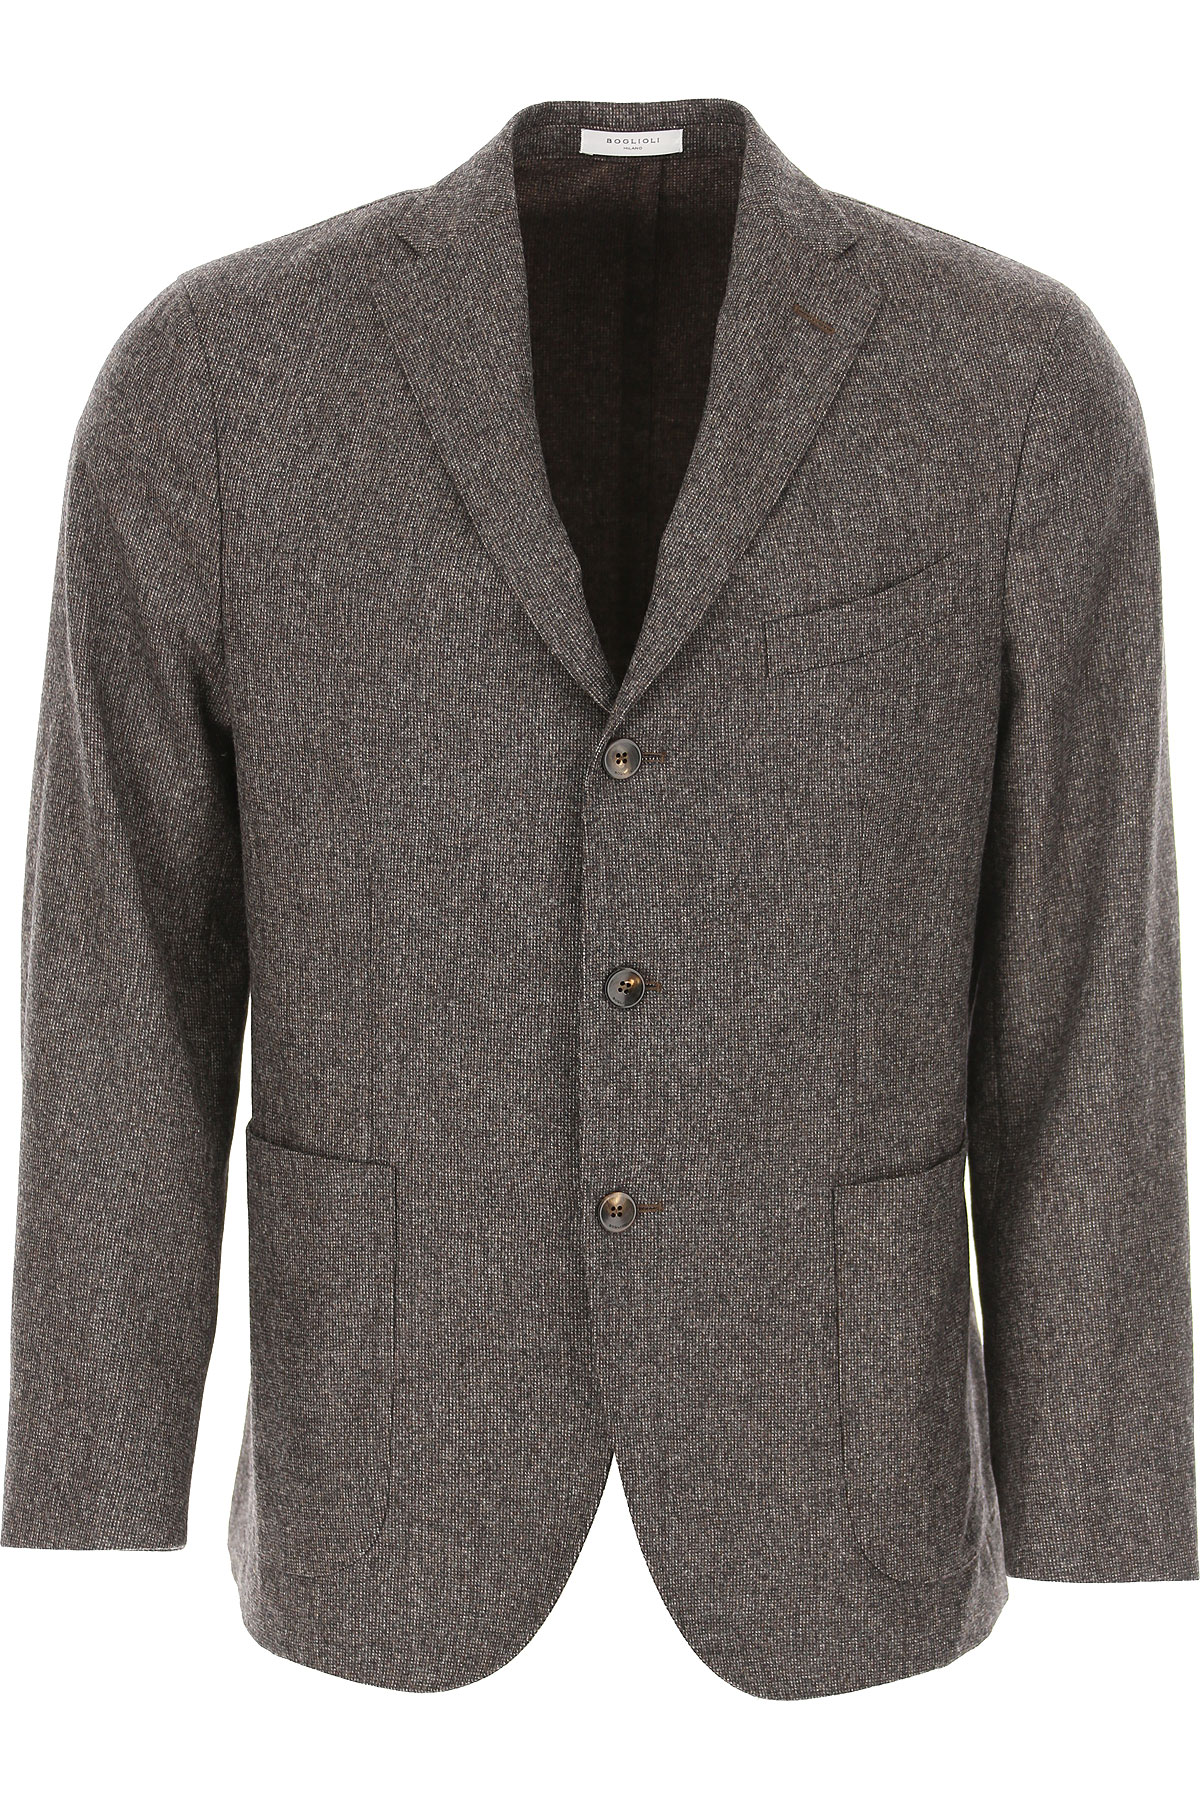 Boglioli Blazer for Men, Sport Coat On Sale, Brownish-grey, Virgin wool, 2019, M XL XXL XXXL